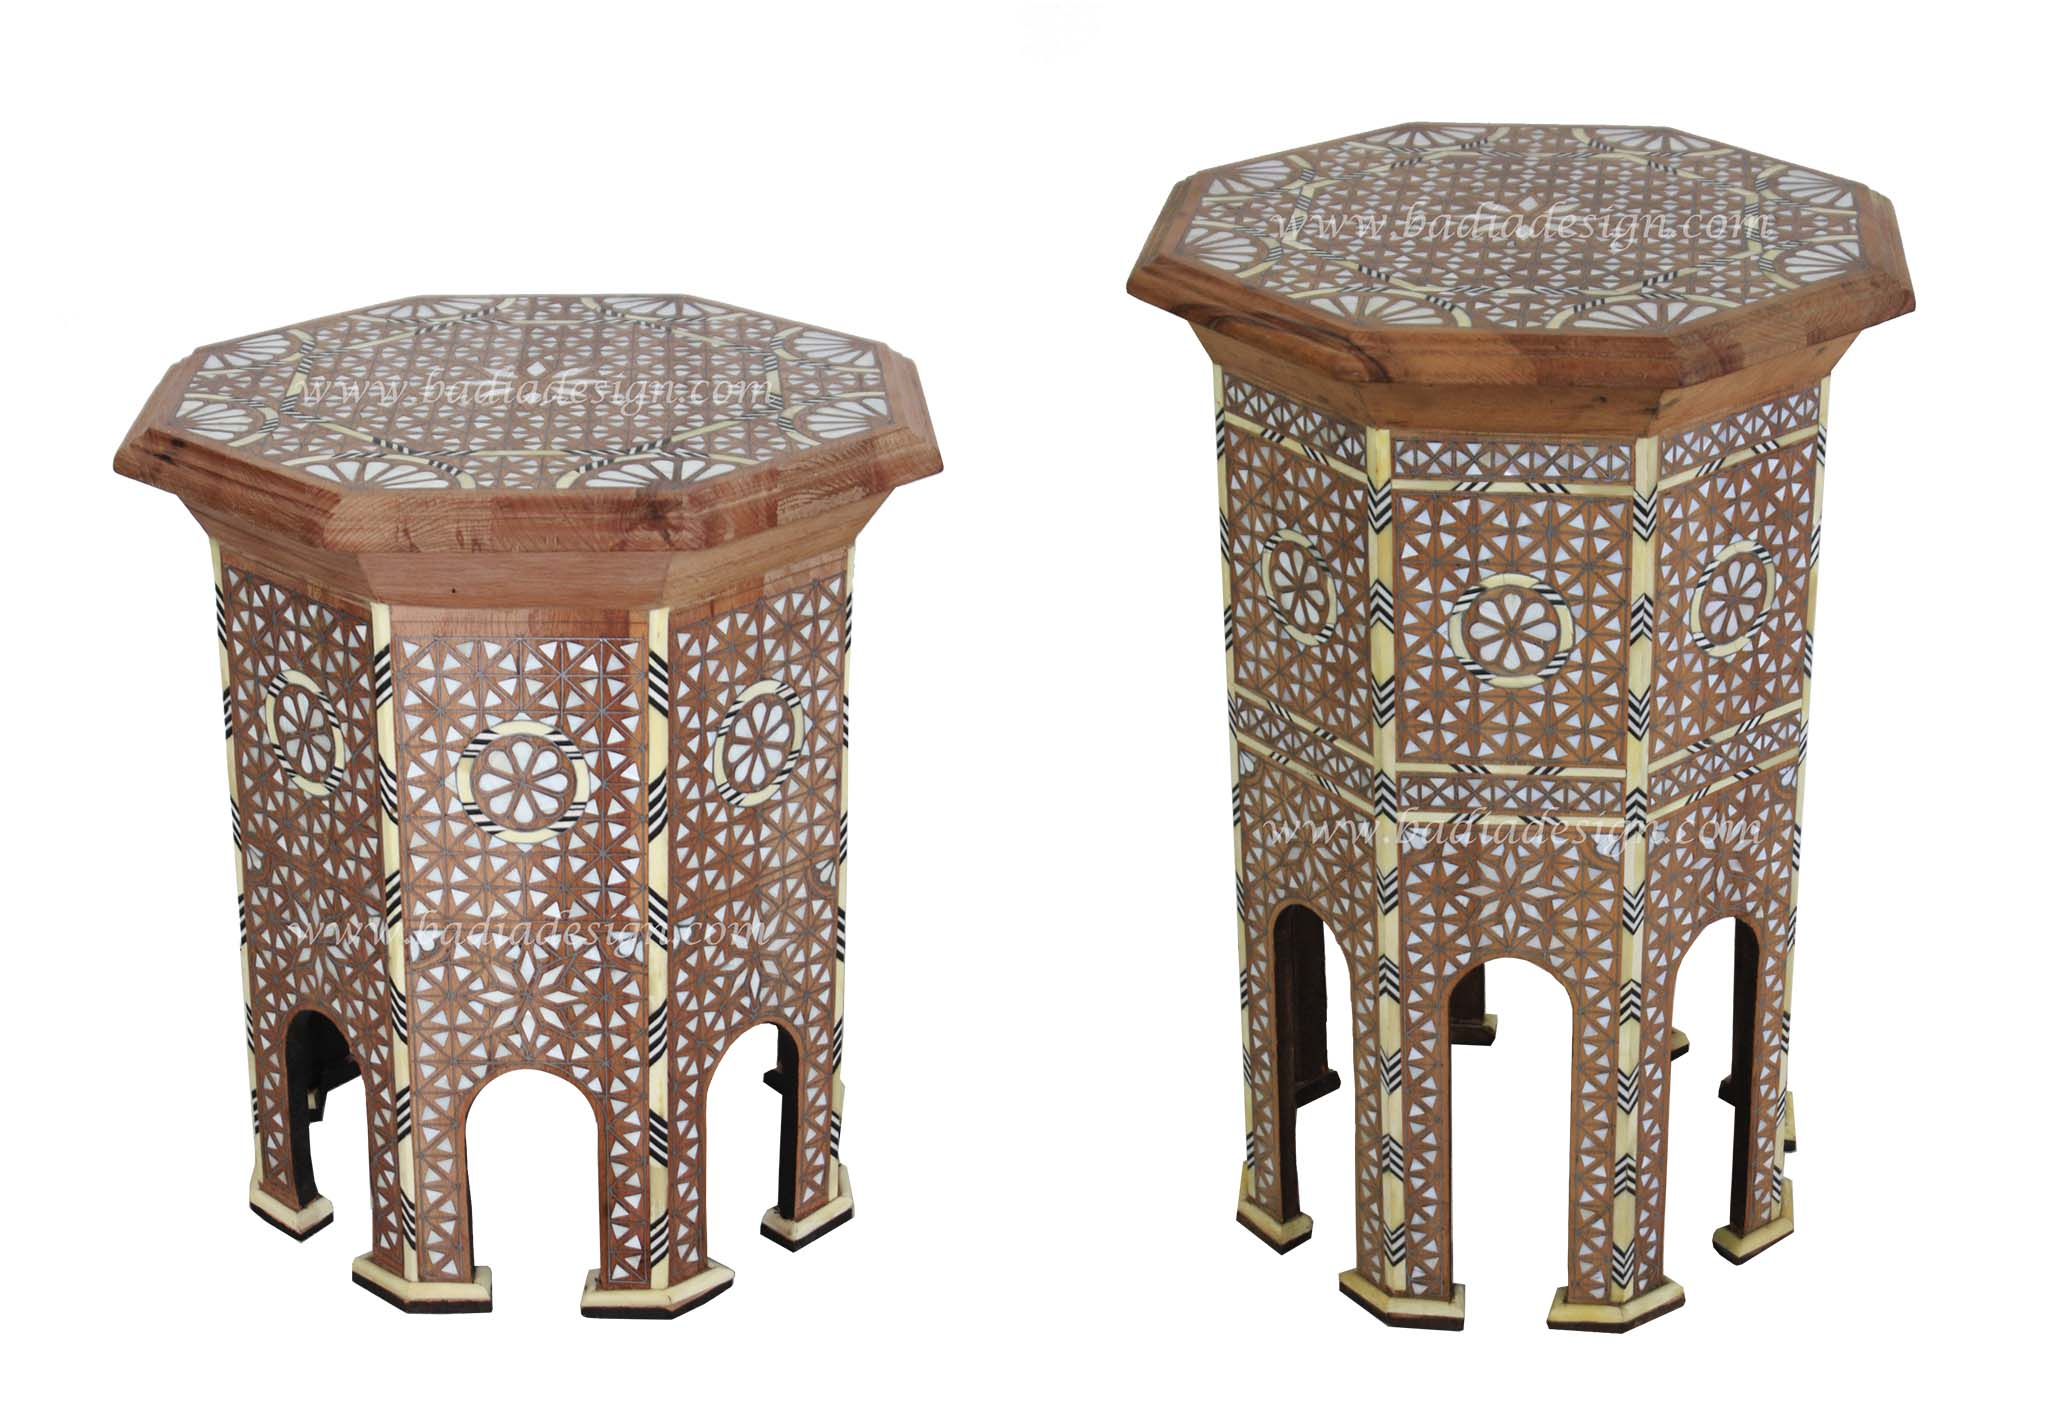 moroccan-mother-of-pearl-side-table-mop-st060.jpg